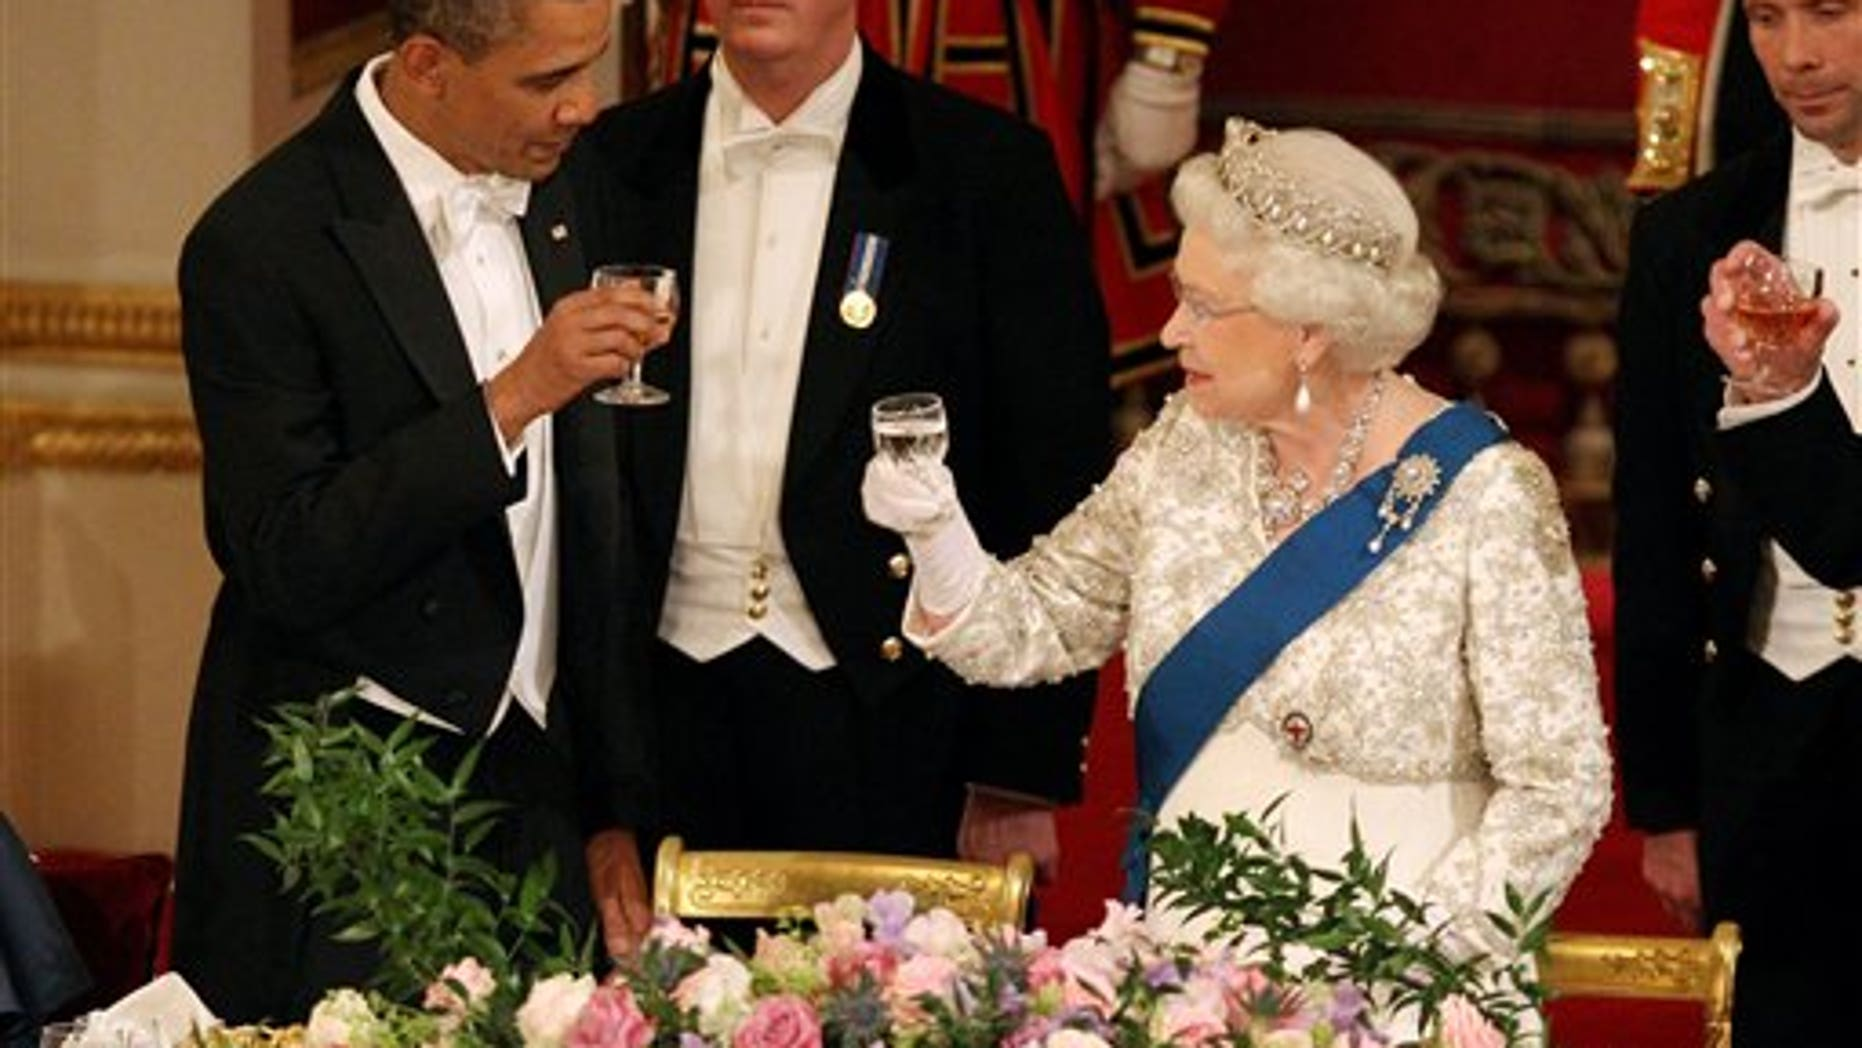 May 24: Britain's Queen Elizabeth II, and U.S. President Barack Obama during a state banquet in Buckingham Palace, London. President Barack Obama immersed himself in the grandeur of Britain's royal family Tuesday, as Queen Elizabeth II welcomed him to Buckingham Palace for the first day of a state visit. (AP/Pool)